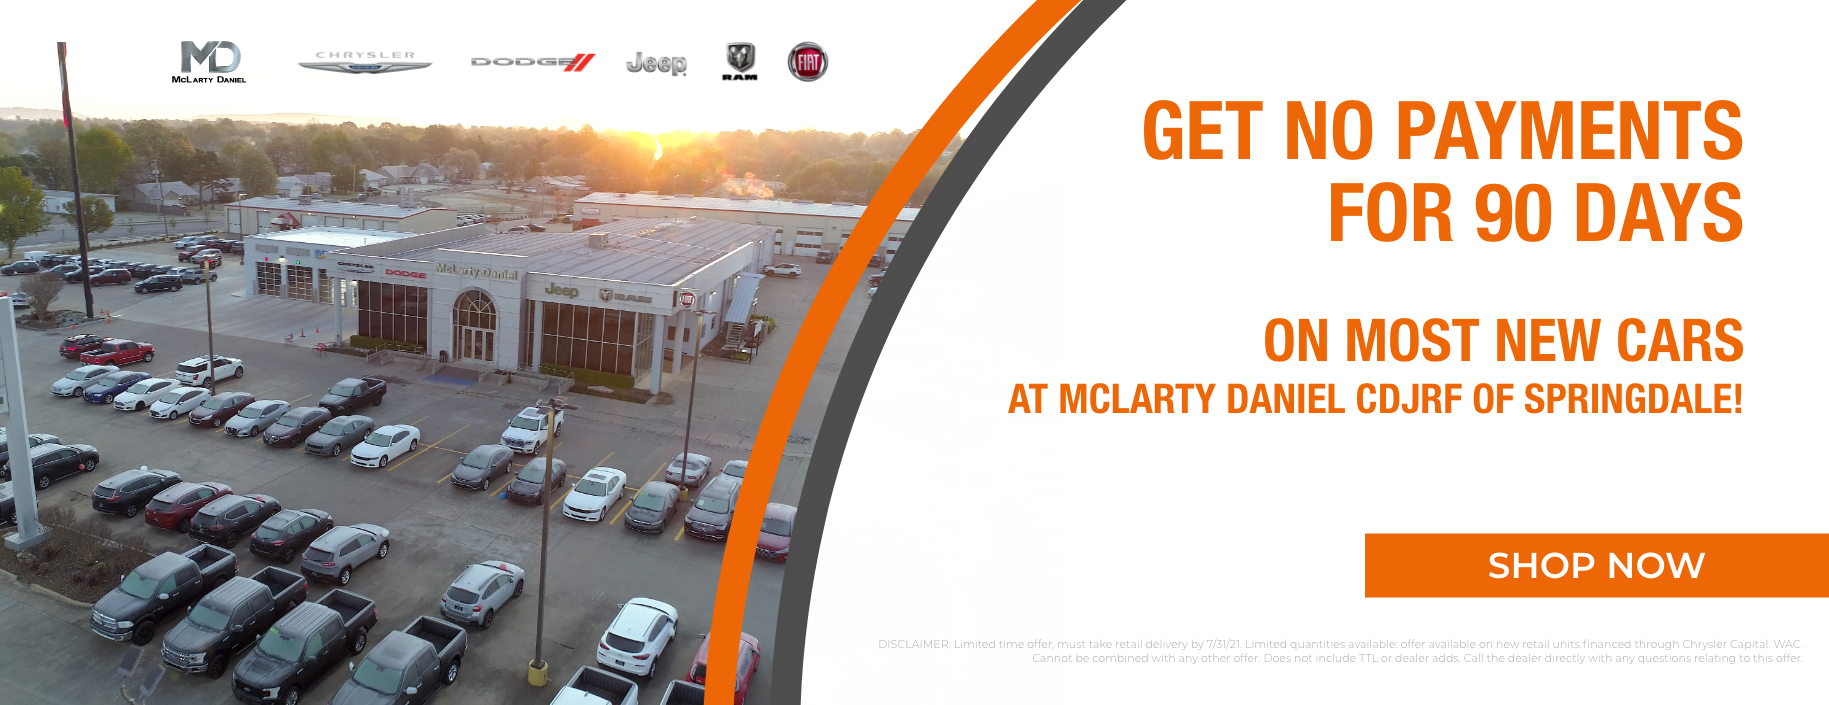 GET NO PAYMENTS FOR 90 DAYS ON MOST NEW CARS AT MCLARTY DANIEL CDJRF OF SPRINGDALE!